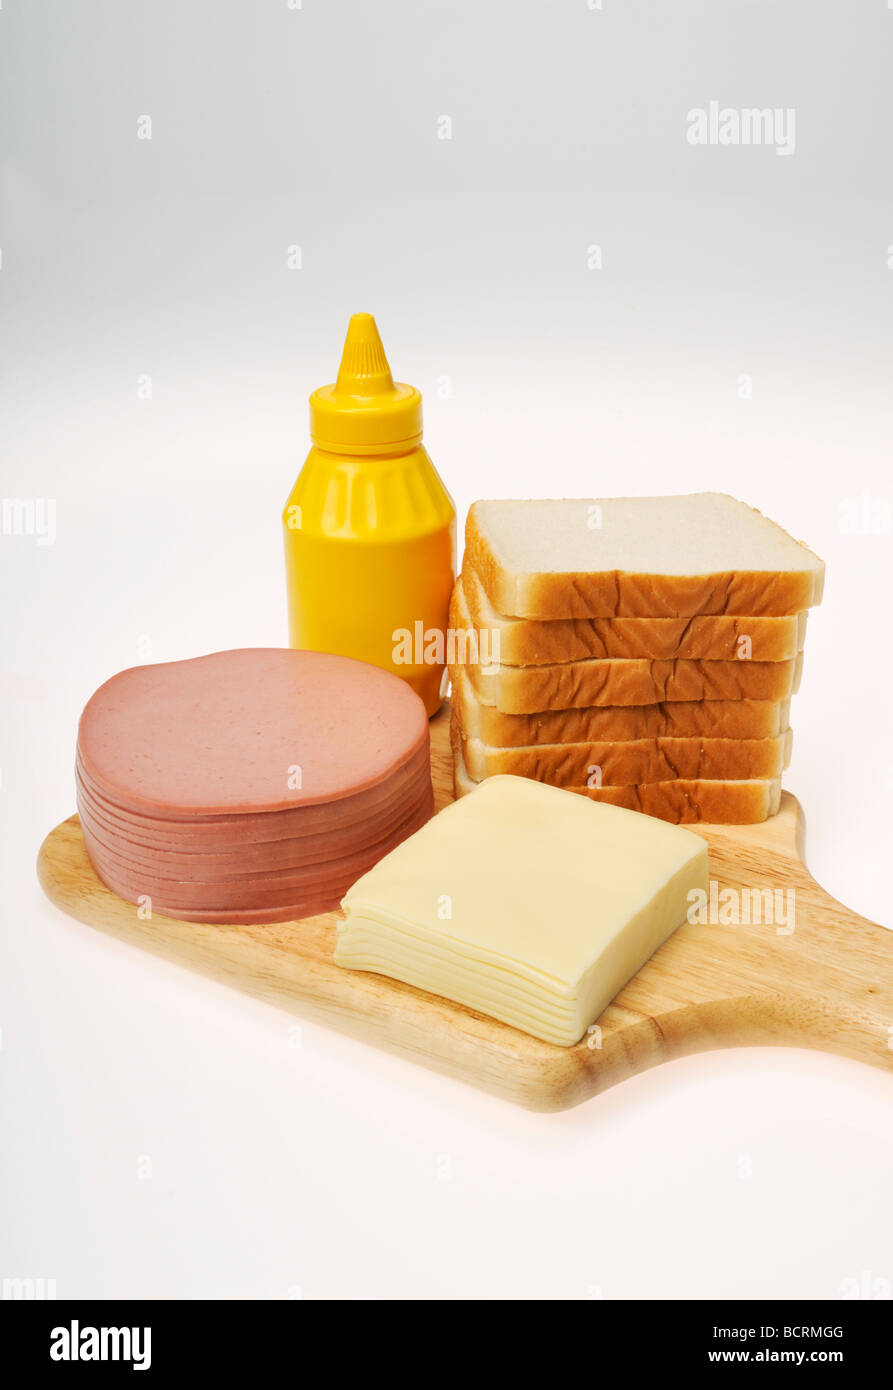 Ingredients for a bologna and cheese sandwich with stack of deli meat, cheese, bread and mustard on wood board - Stock Image